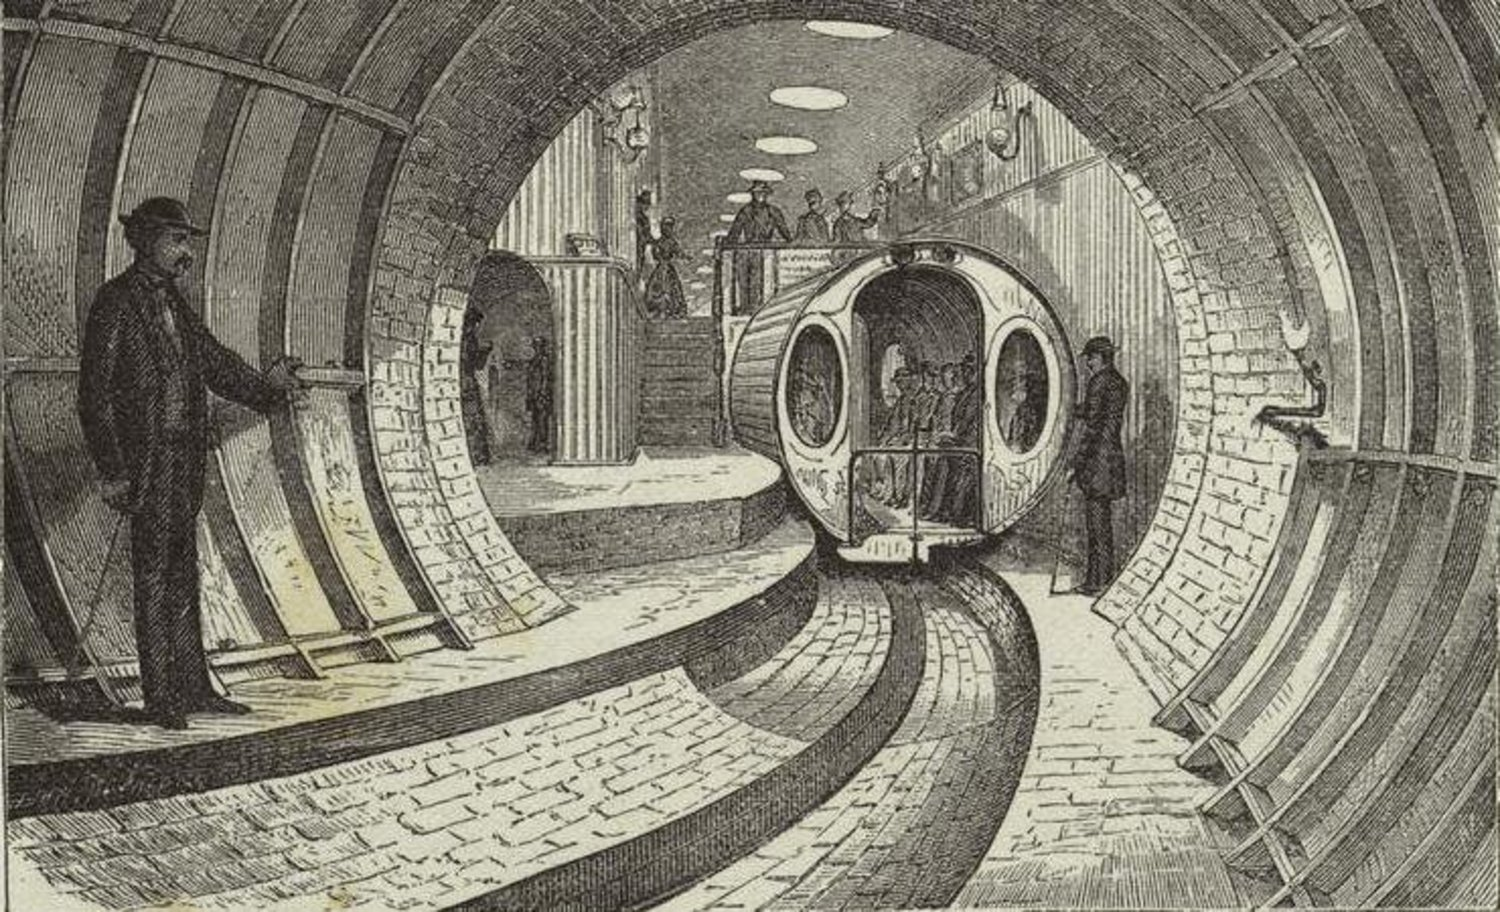 #TodayinHistory: In 1870, the #BeachPneumaticSubway, a single car moved by compressed air, opened to the public. http://t.co/xXhCzUChZP